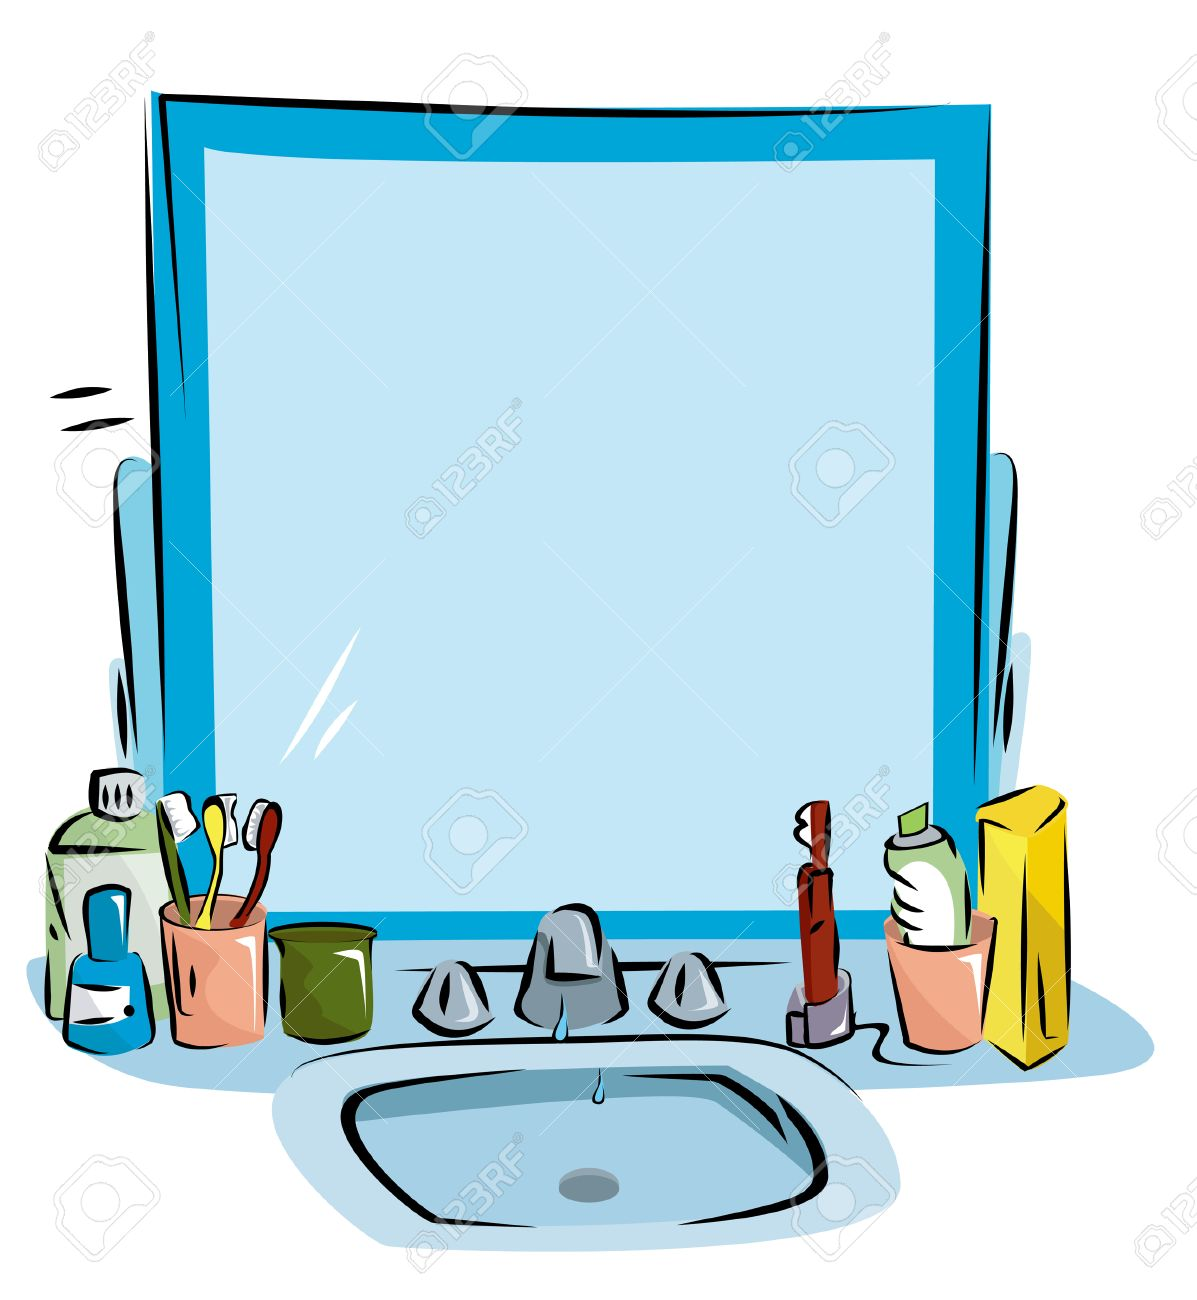 Clipart Waschbecken Bathroom Sink Background